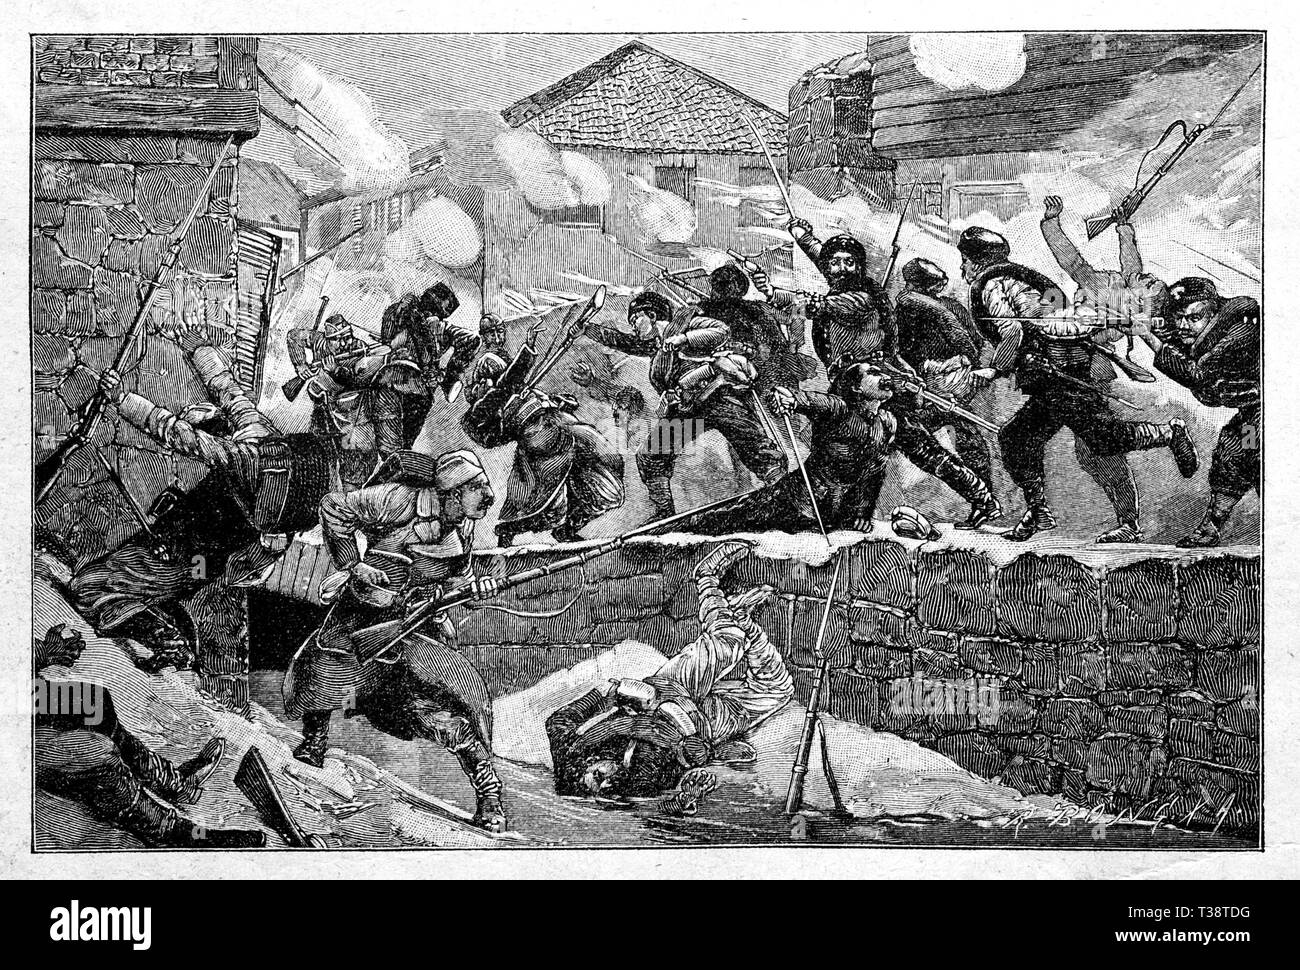 Bulgarians storming the Serbian city of Pirot, November 27, 1882. Digital improved reproduction from Illustrated overview of the life of mankind in the 19th century, 1901 edition, Marx publishing house, St. Petersburg. - Stock Image